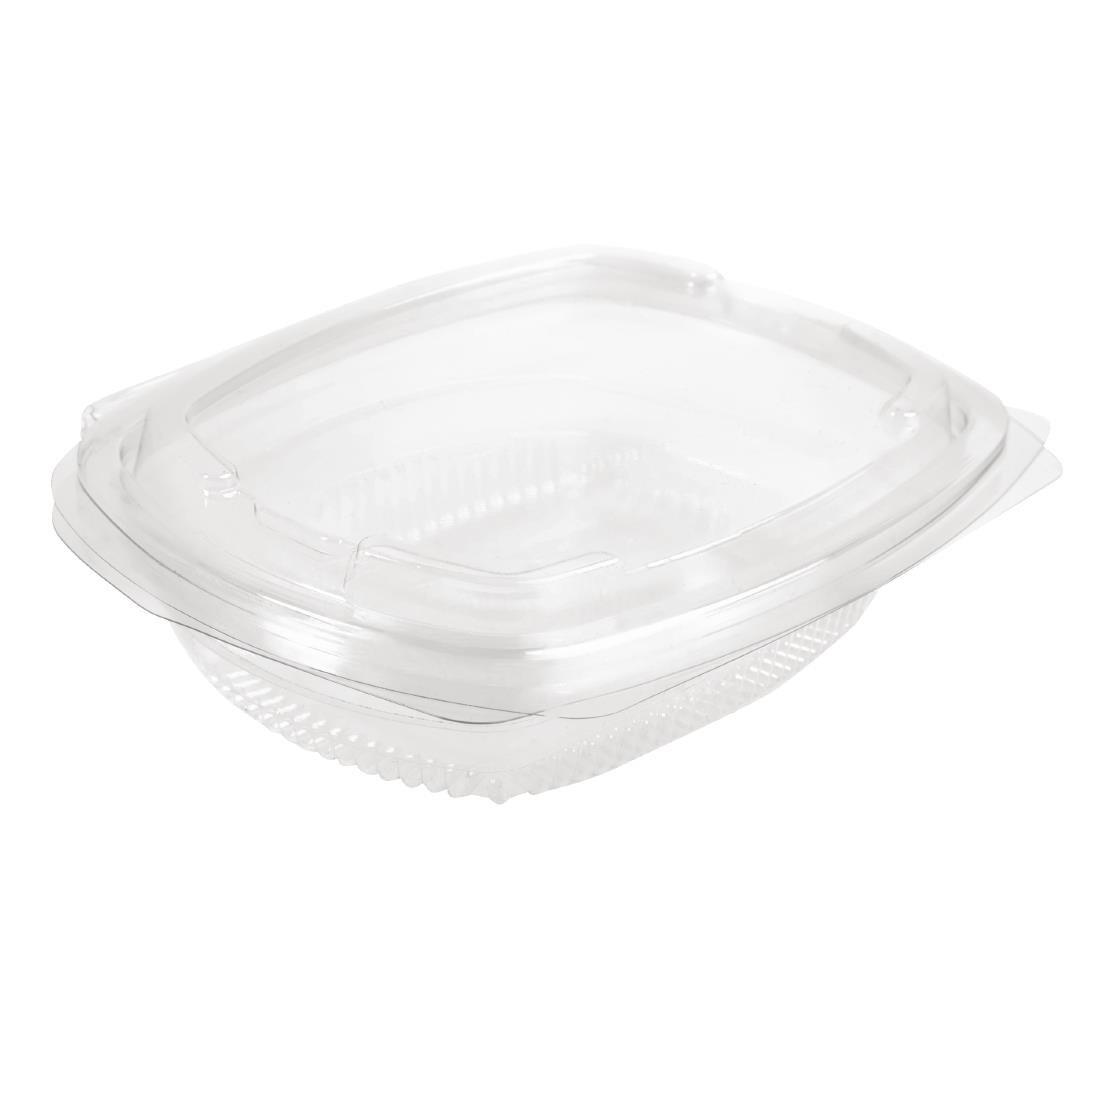 Faerch Fresco Recyclable Deli Containers With Lid 375ml / 13oz